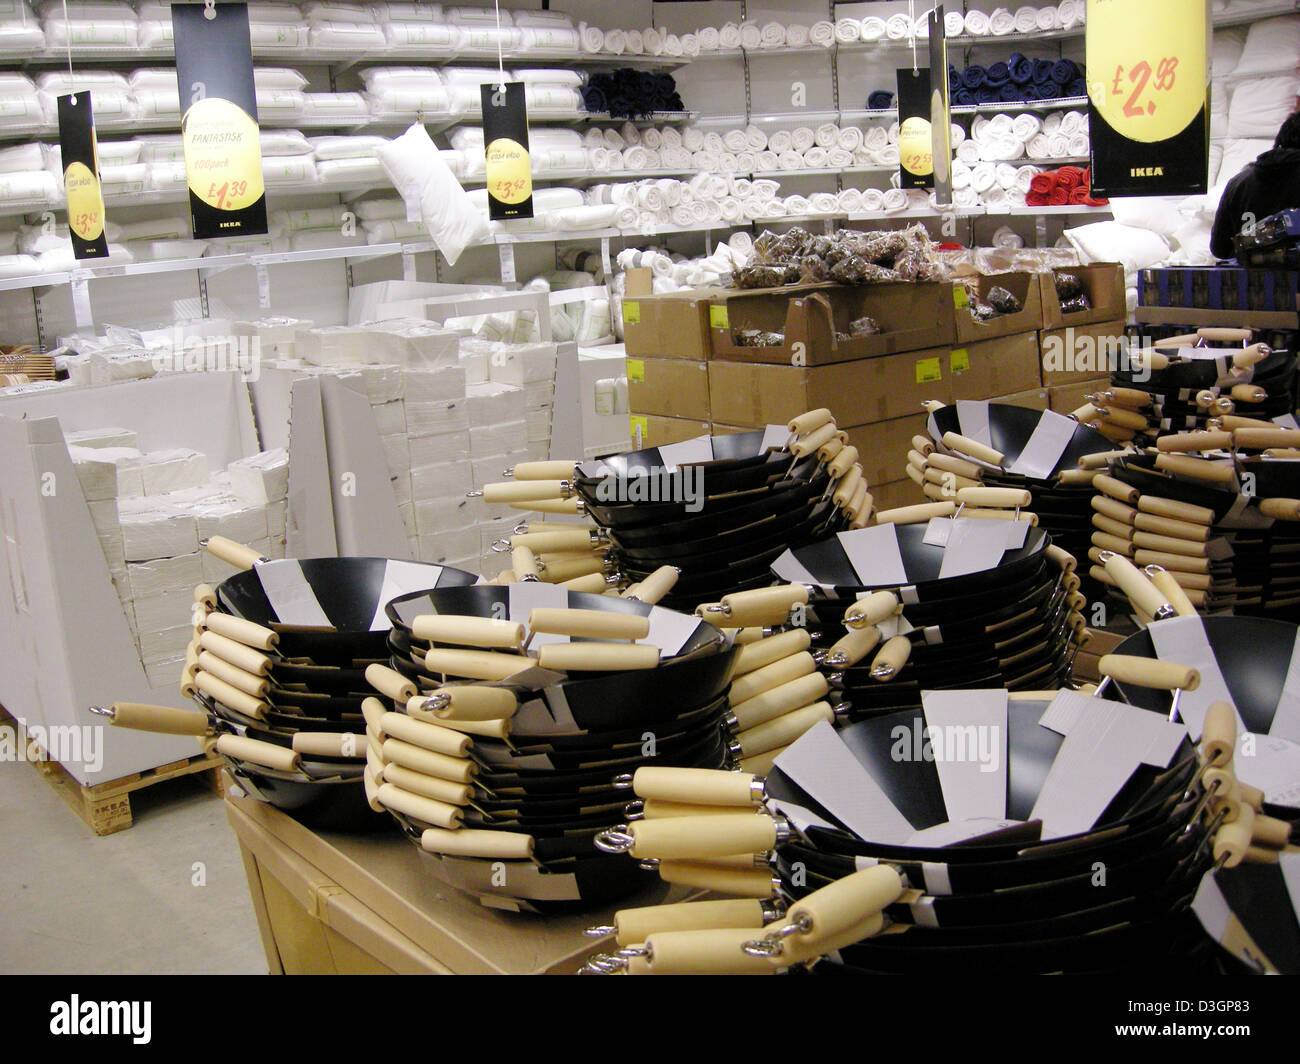 kitchen equipment for sale mats commercial in an ikea shop or store england uk